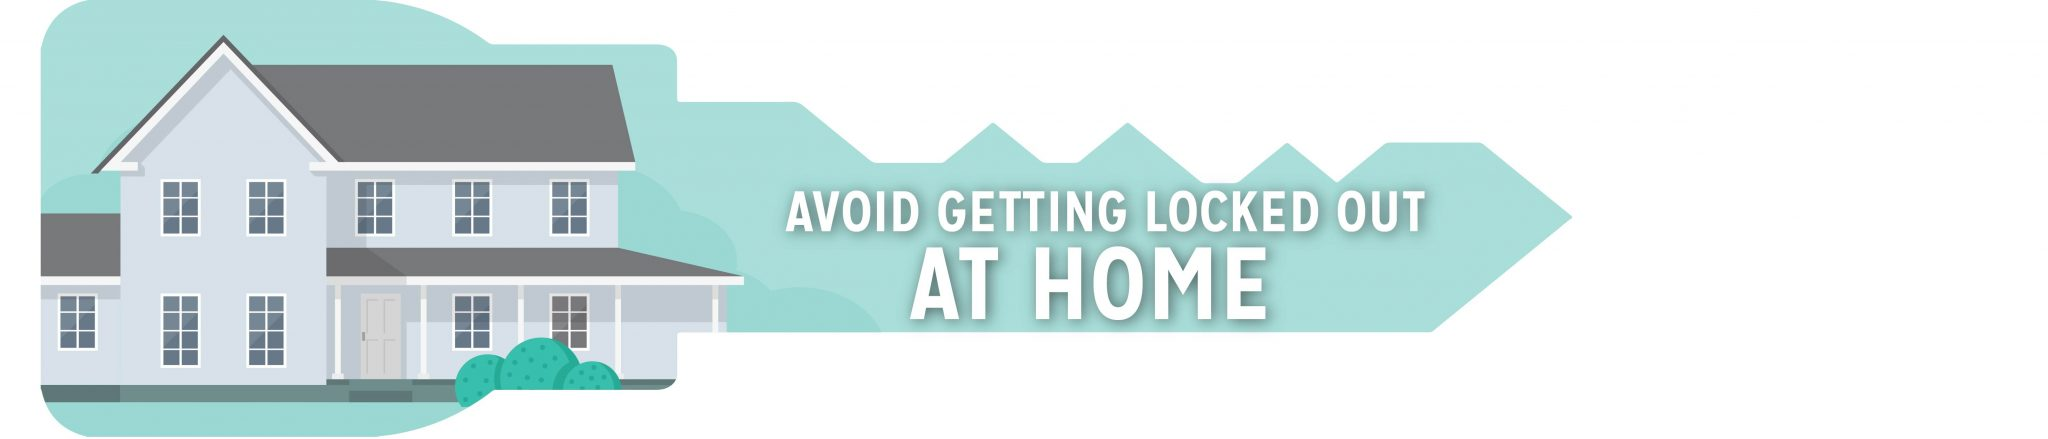 locked-out-home